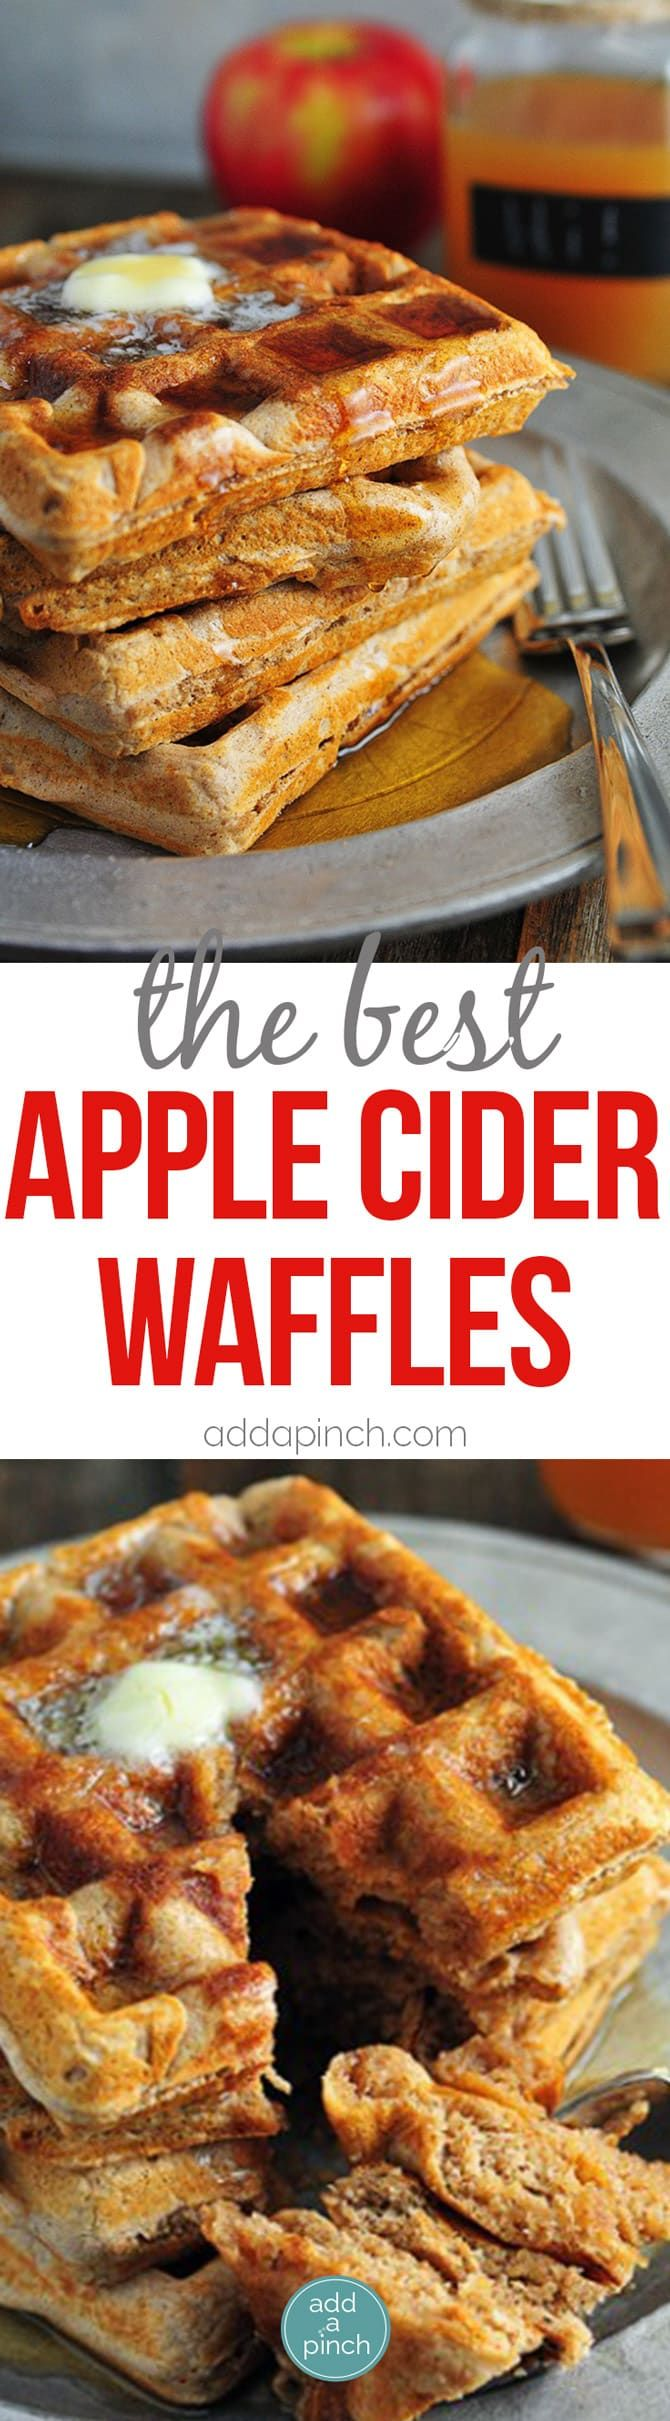 Apple Cider Waffles Recipe - Apple cider waffles are a great addition to your fall and winter breakfast routine. Serve these waffles with warm maple syrup and apple cider for the ultimate breakfast!